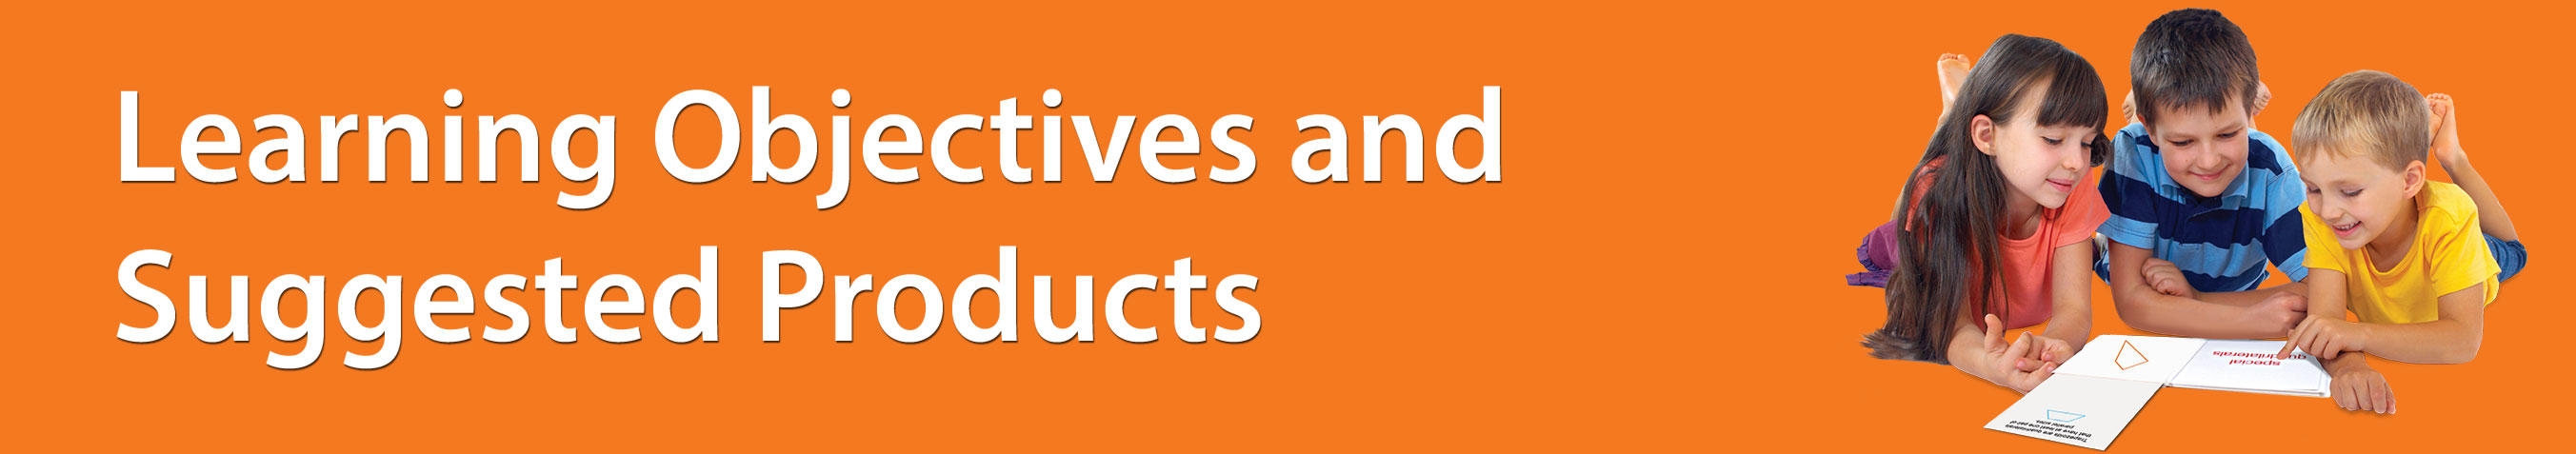 Learning Objectives and Suggested Products